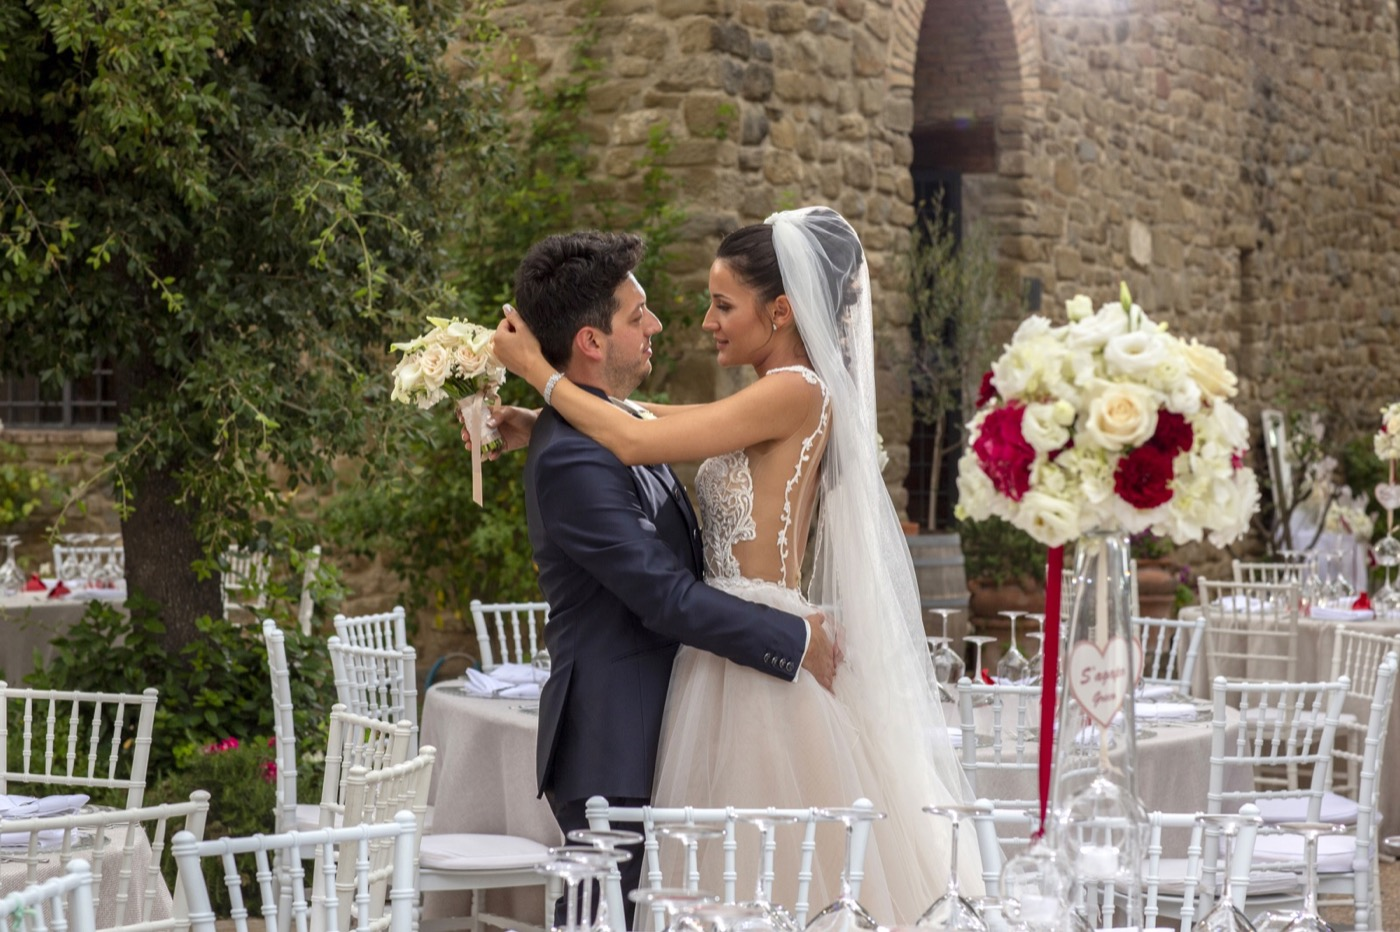 Claudio-Coppola-wedding-photographer-castello-rosciano-torgiano-47